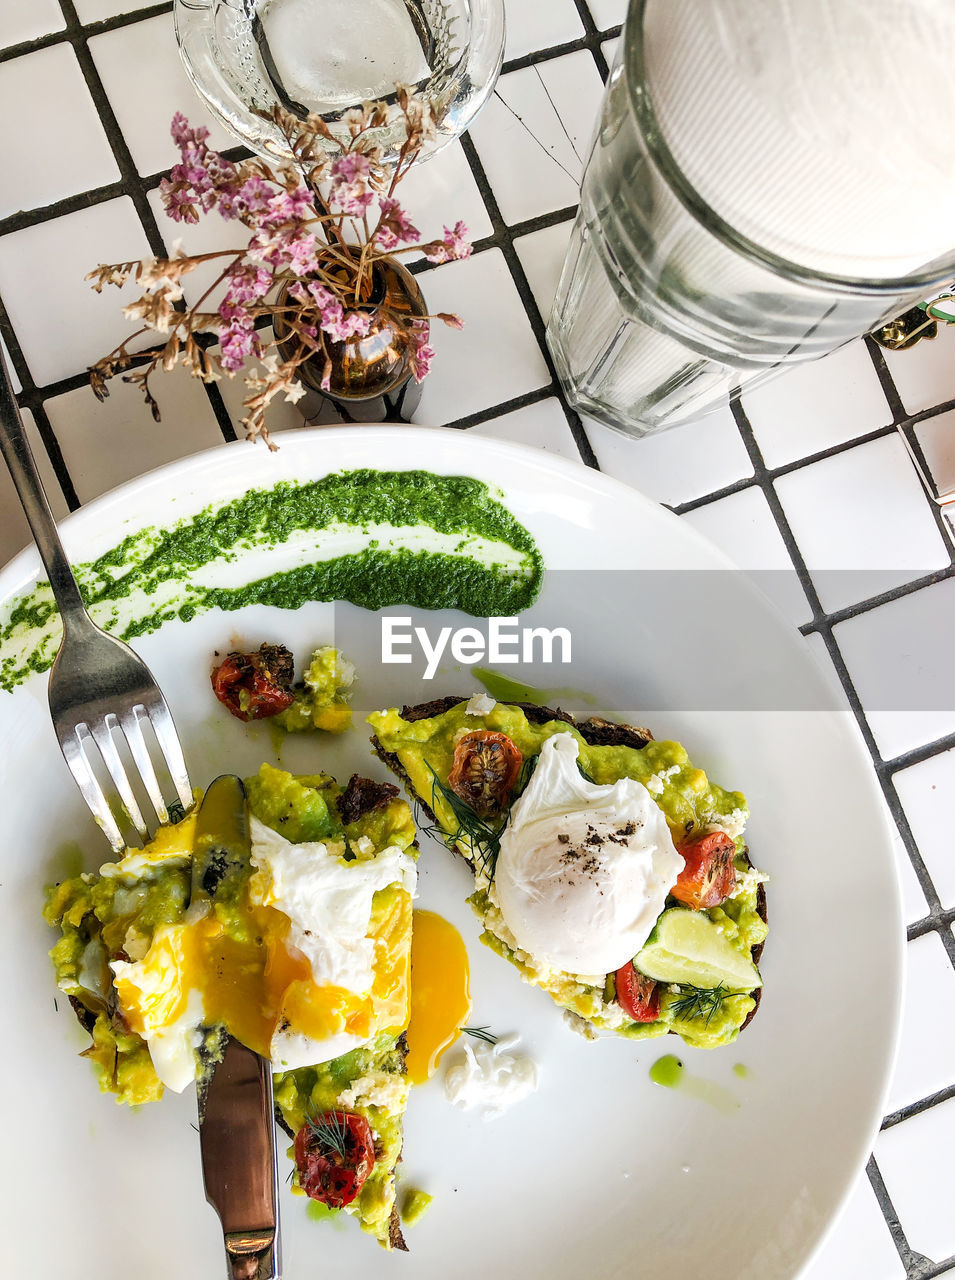 food, food and drink, freshness, indoors, ready-to-eat, healthy eating, still life, plate, table, vegetable, no people, high angle view, serving size, wellbeing, salad, close-up, kitchen utensil, eating utensil, meal, indulgence, vegetarian food, temptation